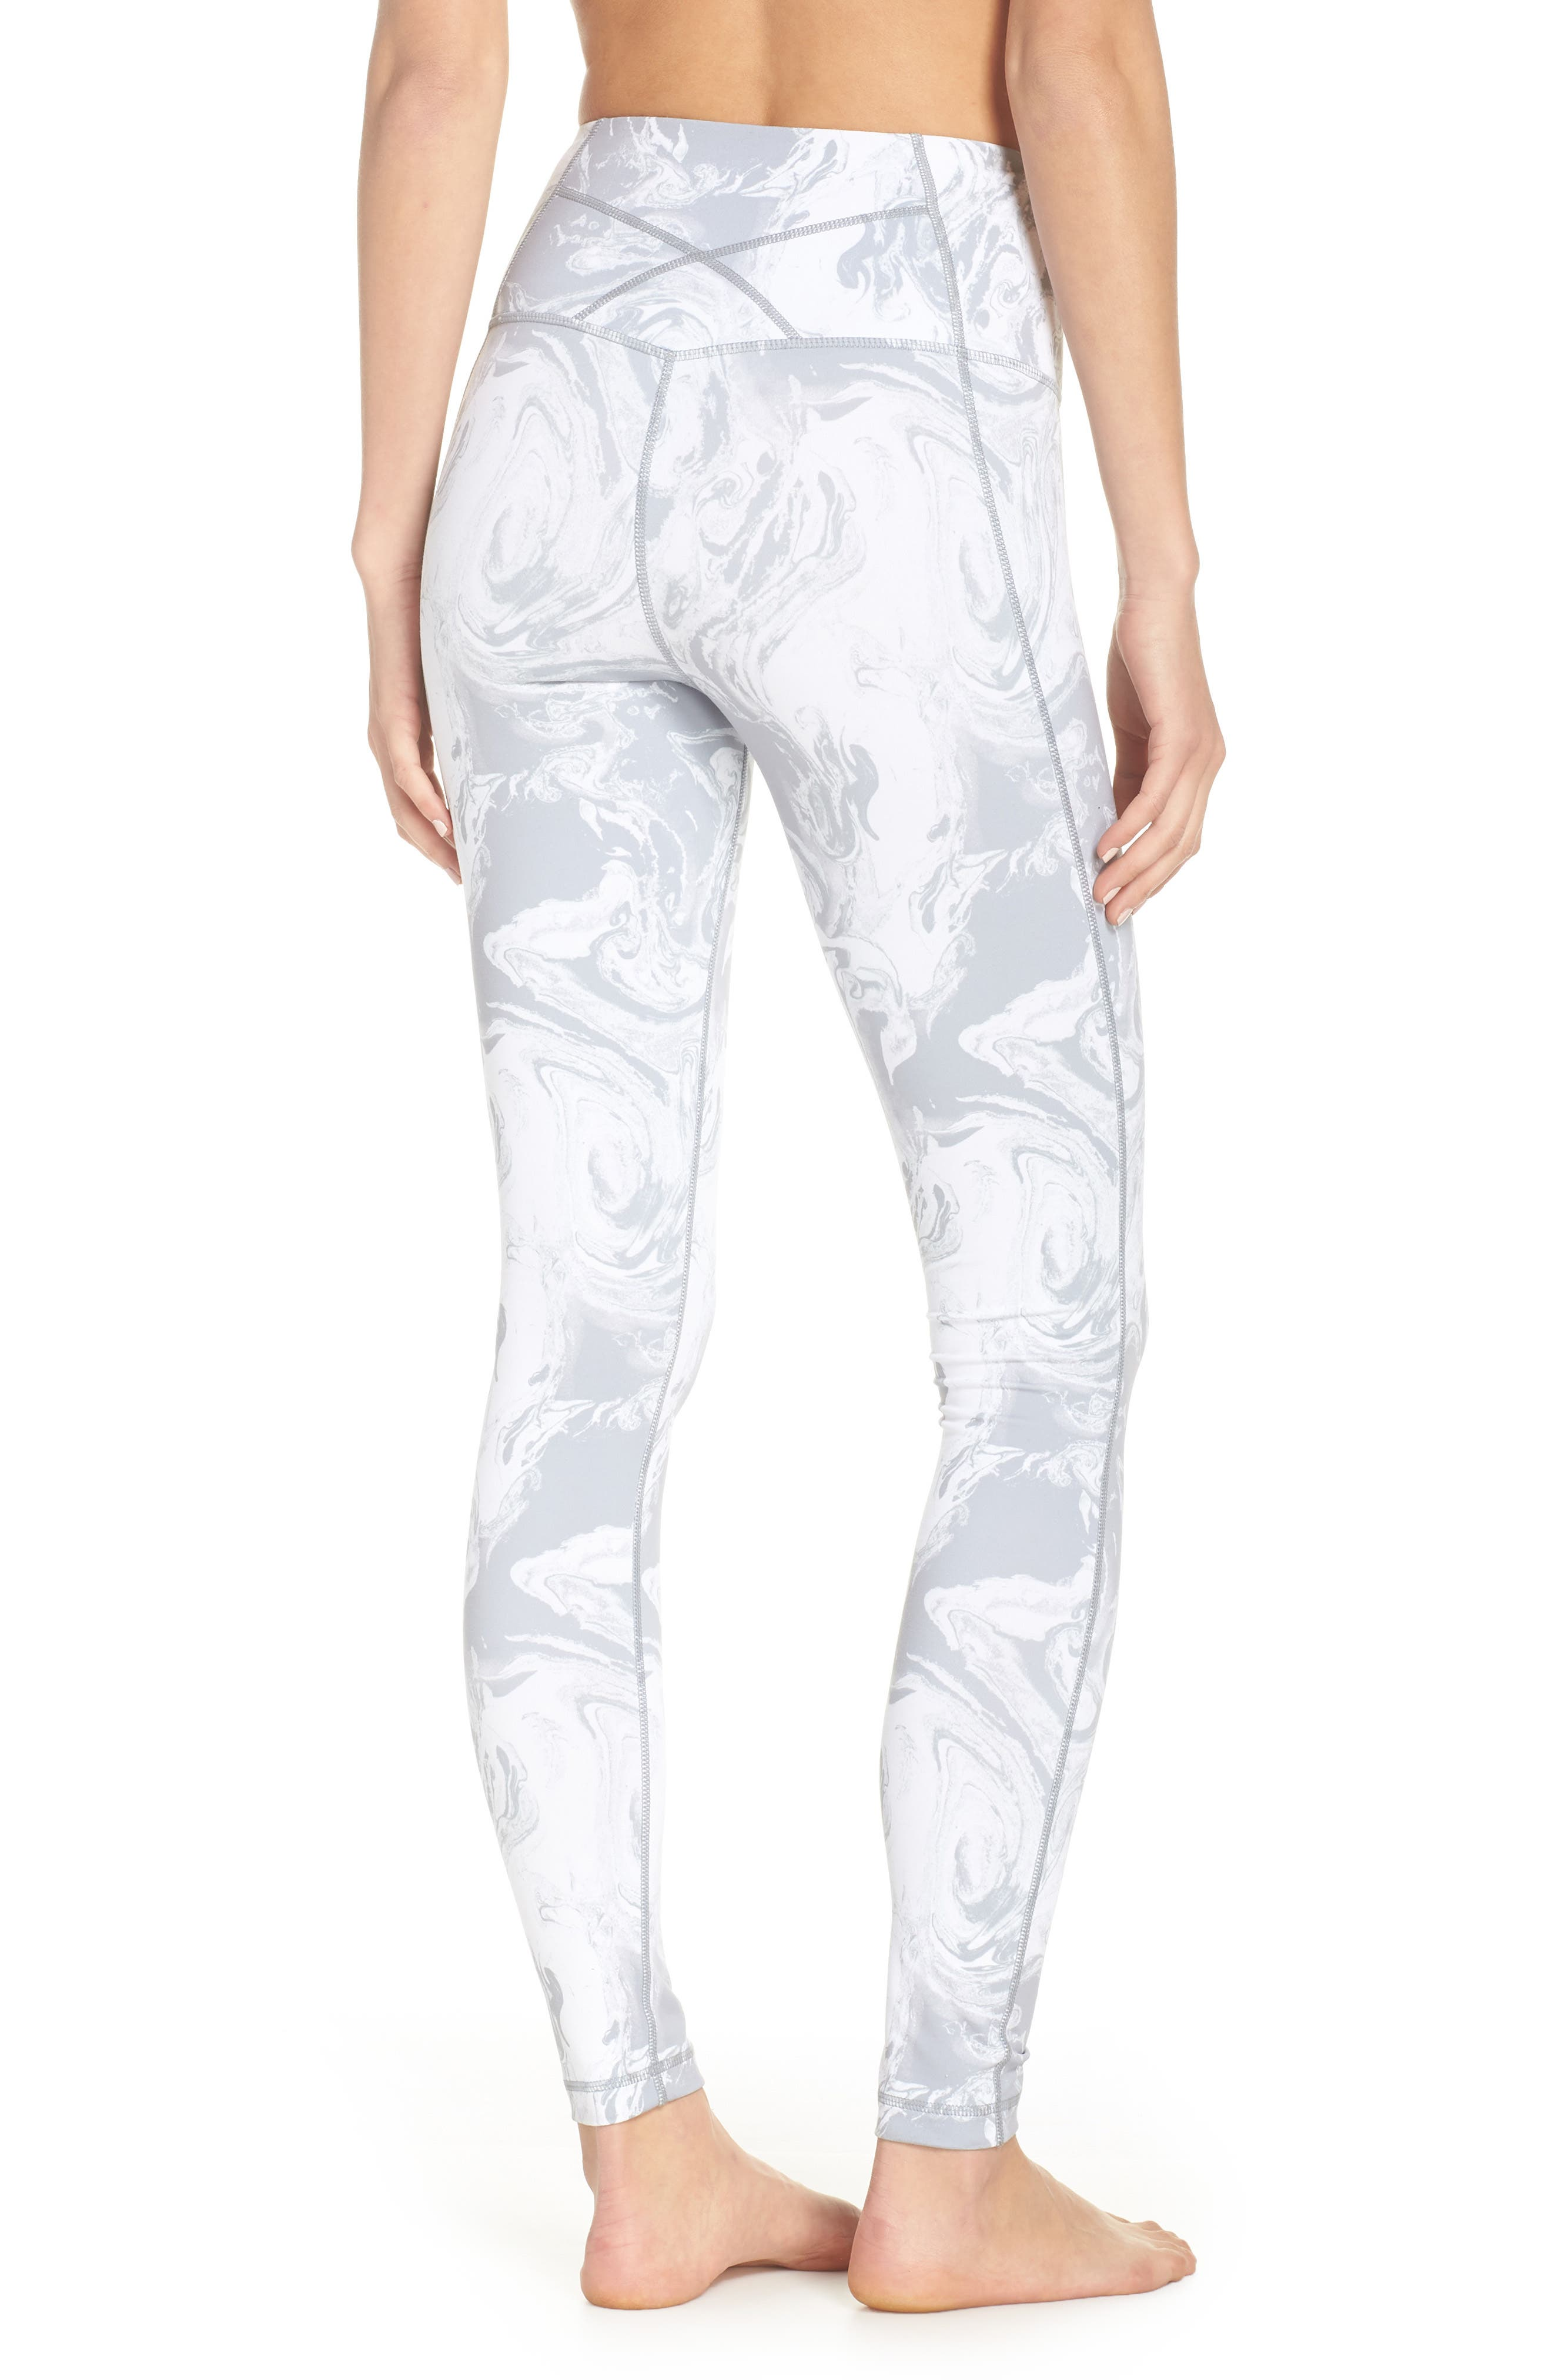 Live In High Waist Leggings,                             Alternate thumbnail 2, color,                             GREY SCONCE PRETTY MARBLE